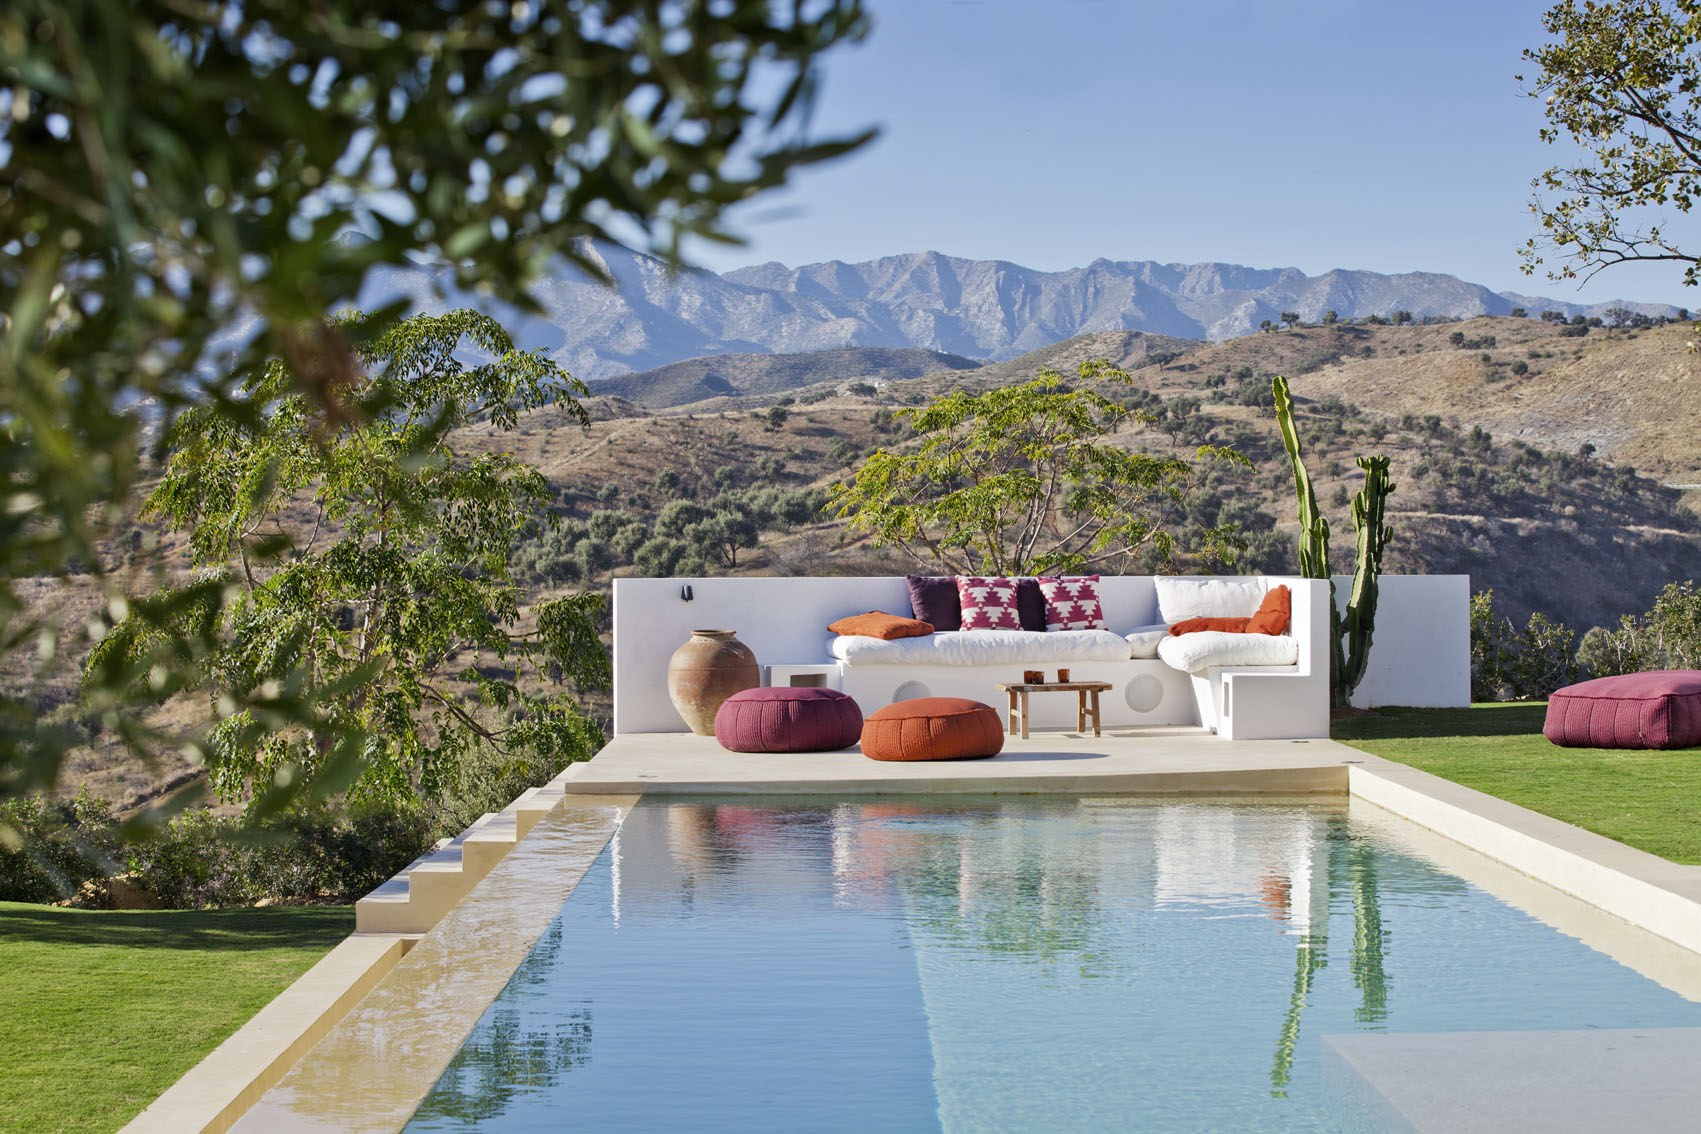 Infinity pool, Mountain view, Texas, Colorado, Outside lounge, poolside, Marbella, Andalucia, Arizona feel, desert, olive groves, Poofs, Cushions